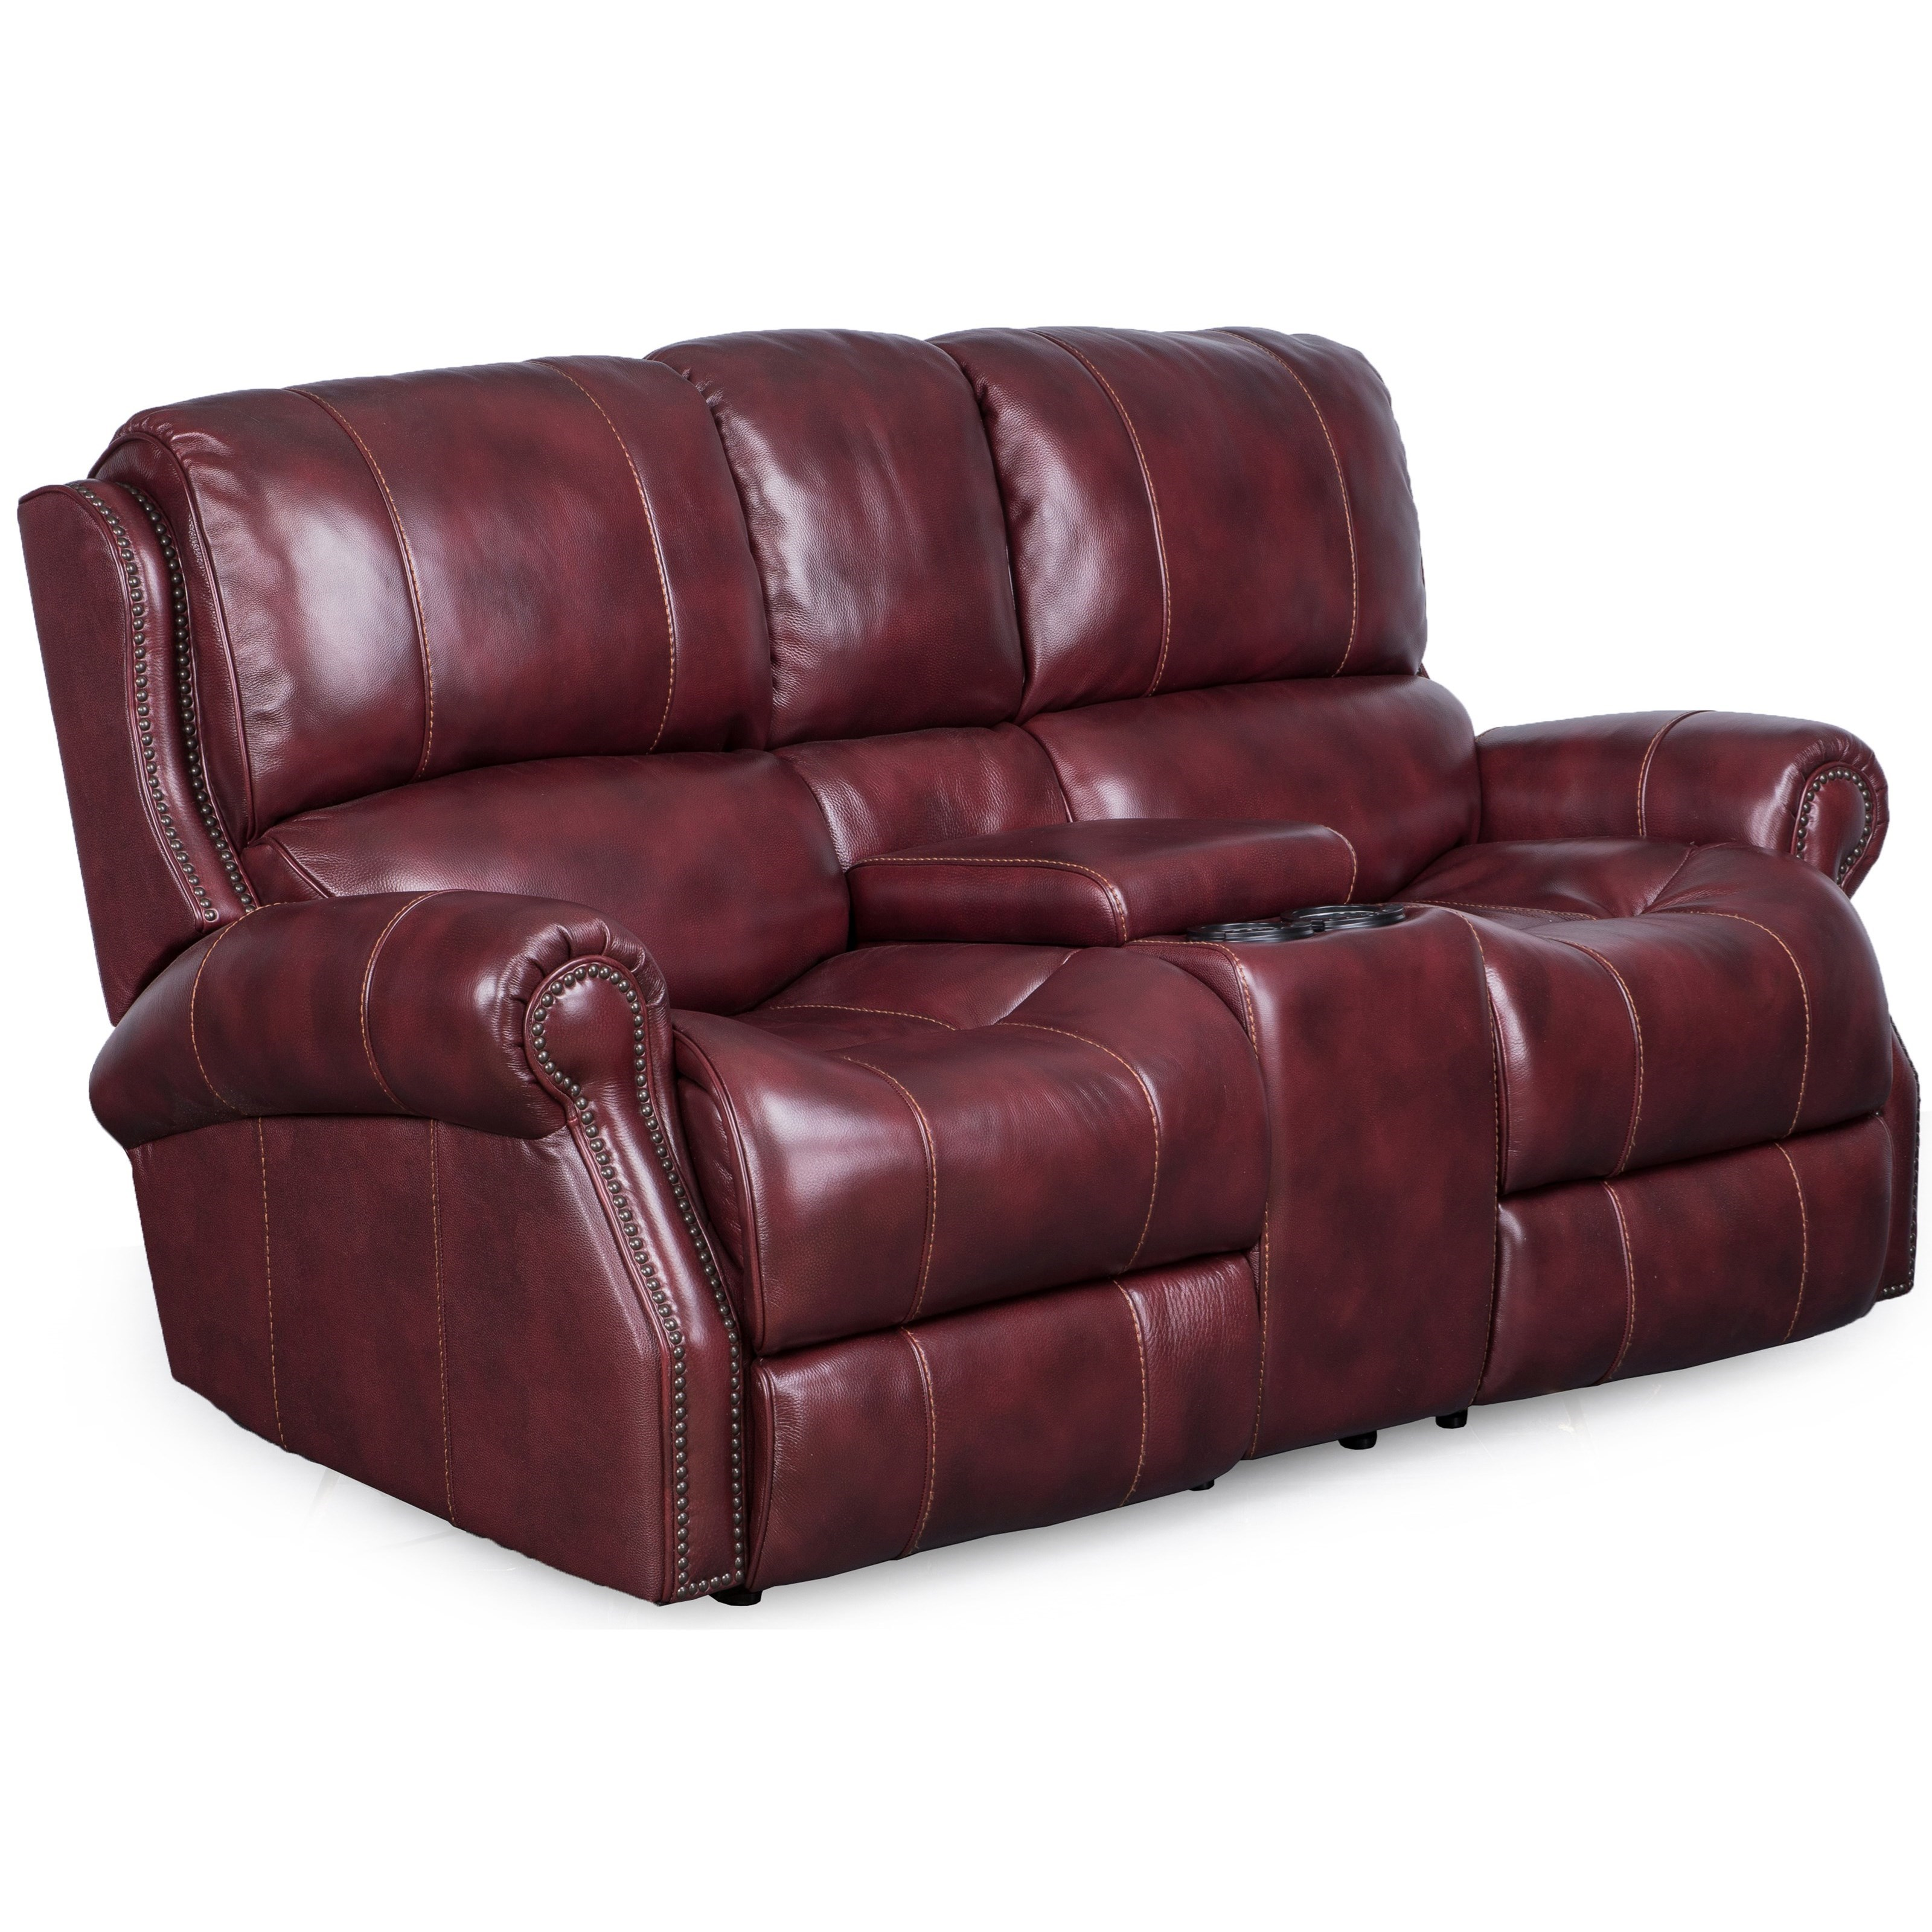 Synergy Home Furnishings Manor Gliding Loveseat with Console - Item Number: 1346-68-BriarwoodMerlot